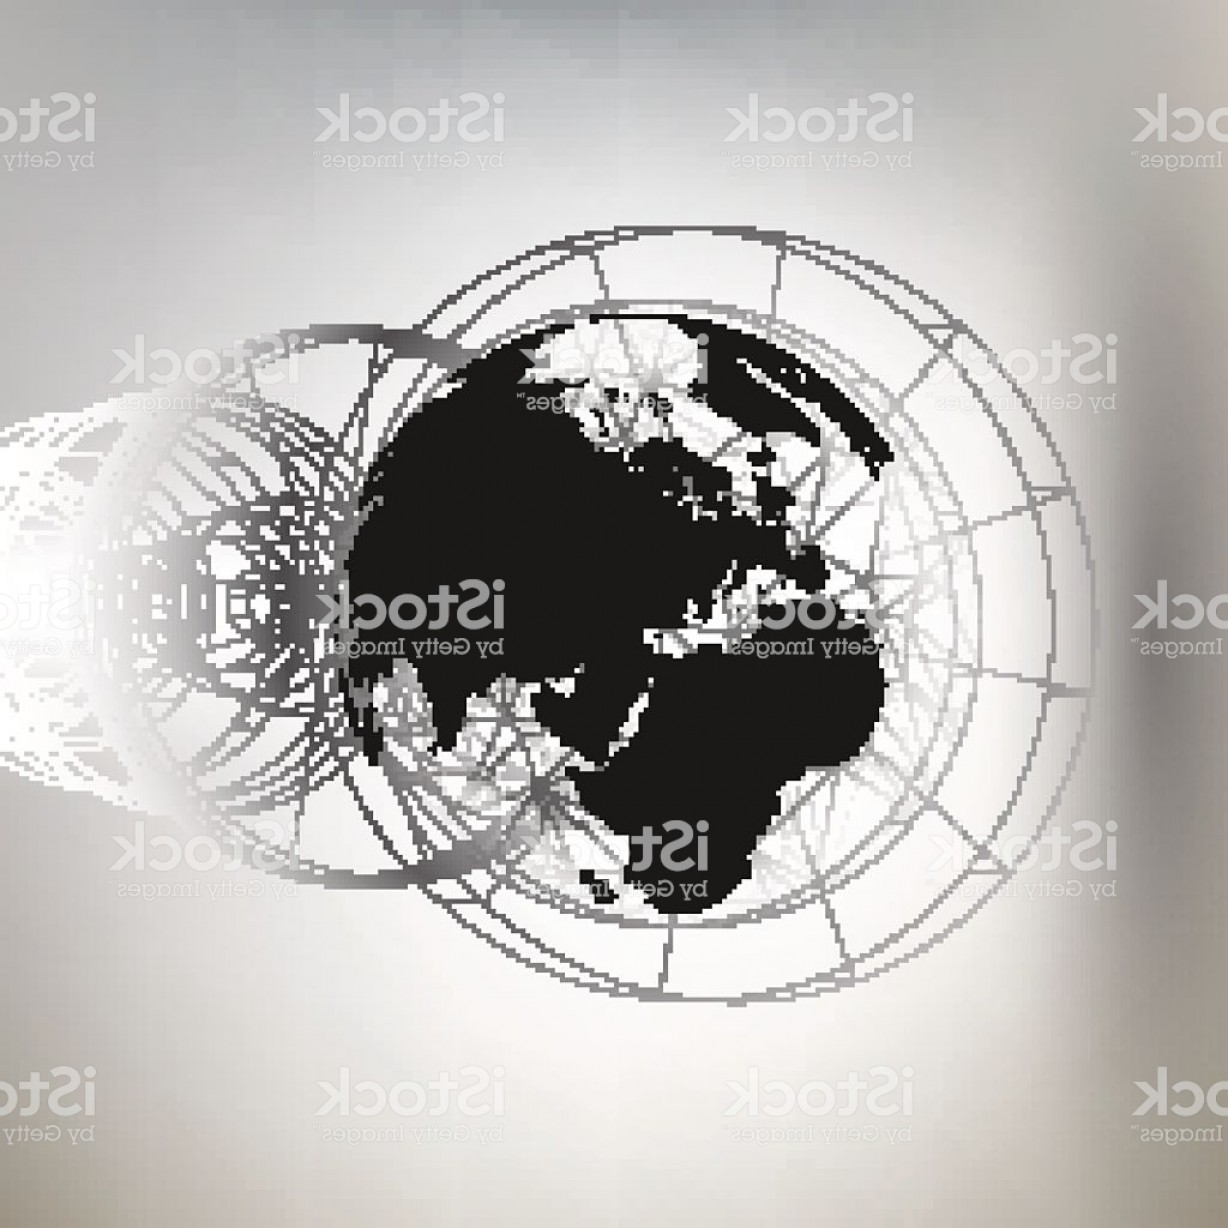 Abstract Vector Art Globe TV: Three Dimensional Dotted World Globe With Abstract Construction And Molecules Gm